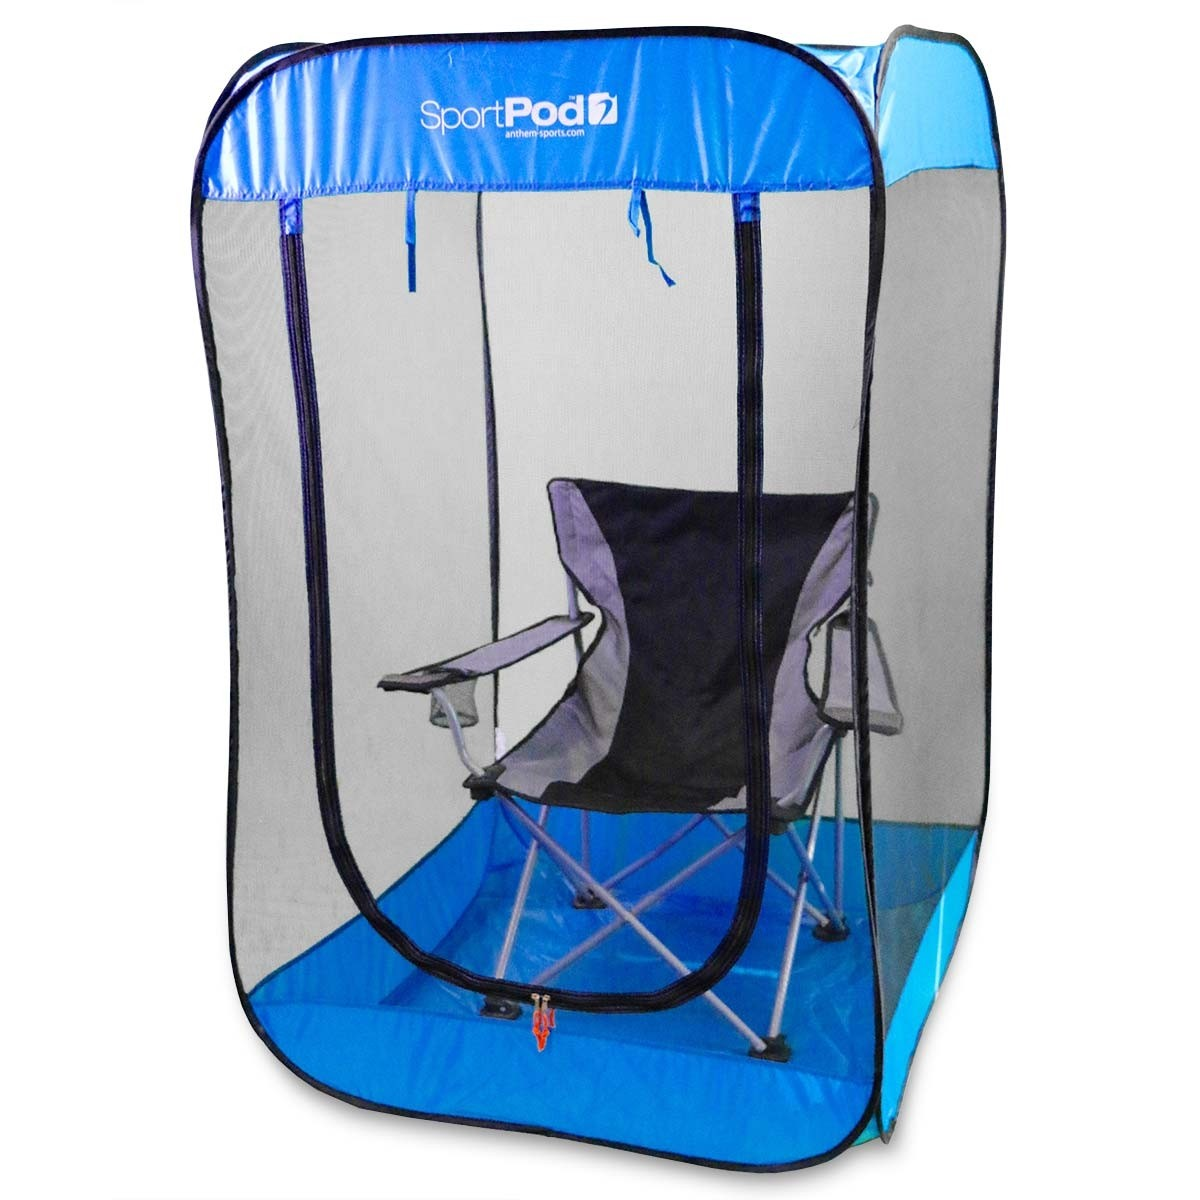 Bugpod Sportpod Pop Up Insect Screen Tent A00 203